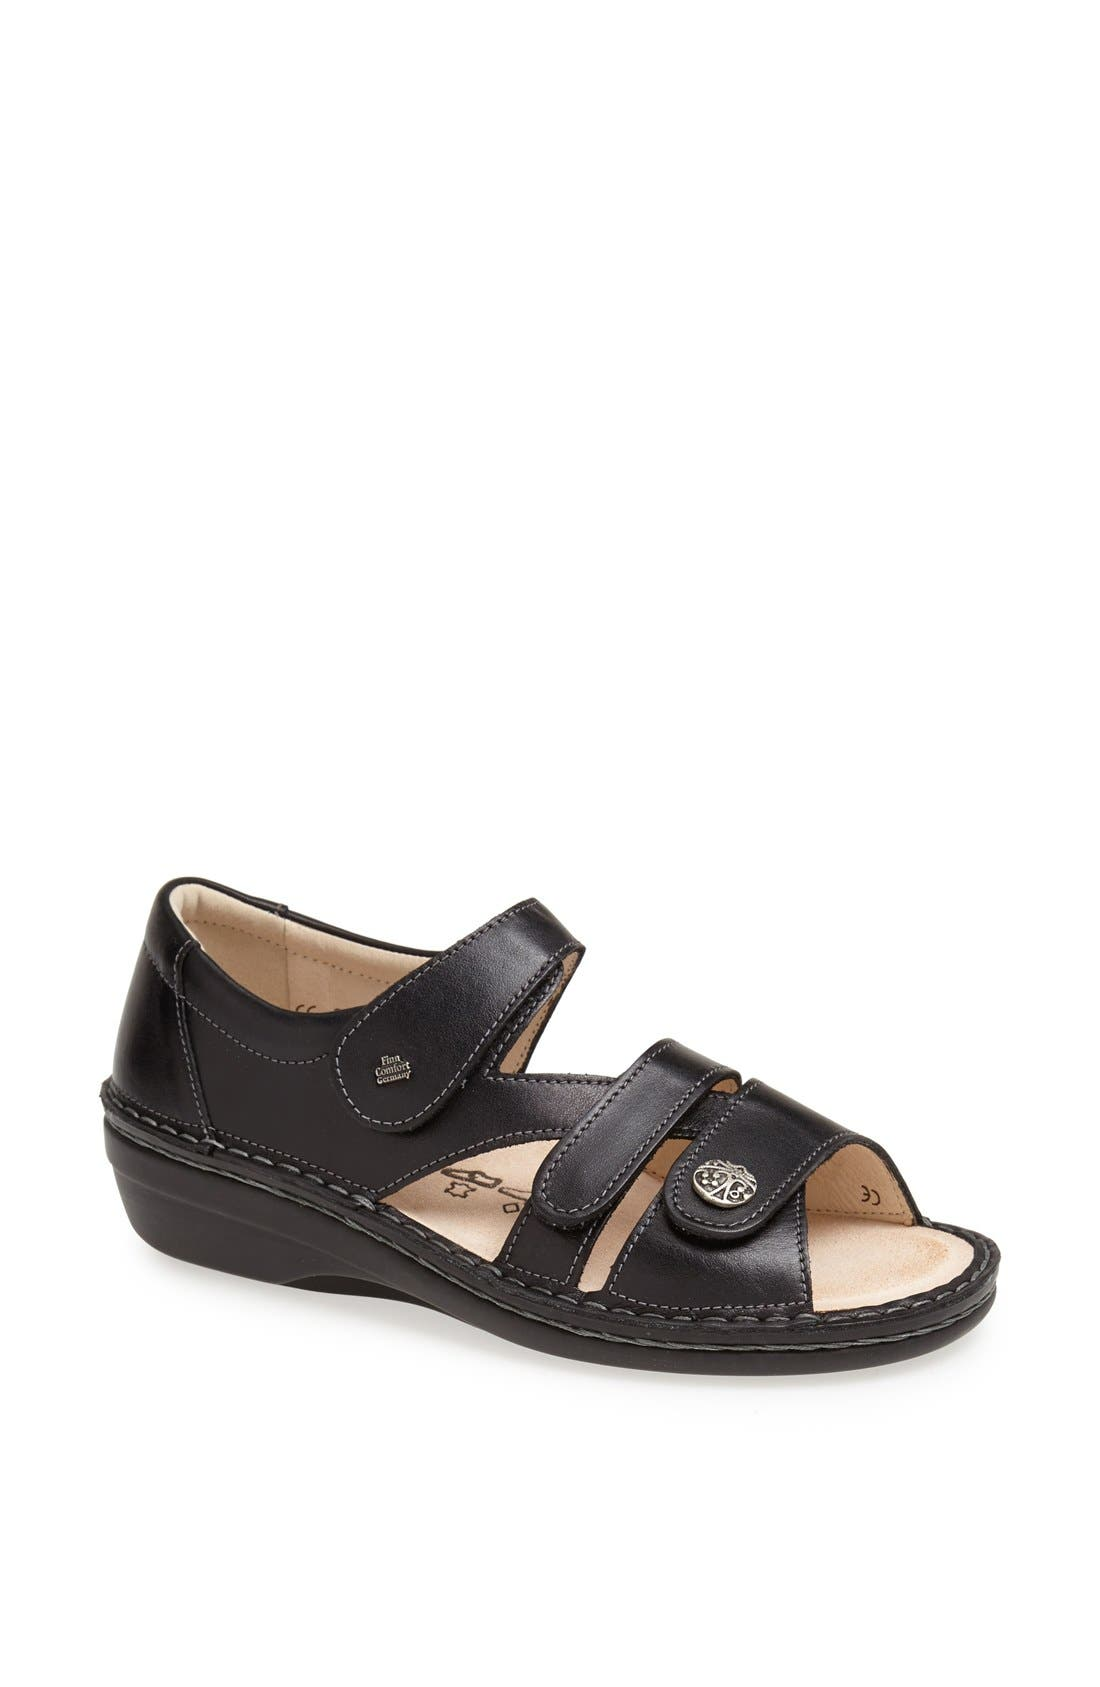 'Sintra' Sandal,                             Main thumbnail 1, color,                             BLACK